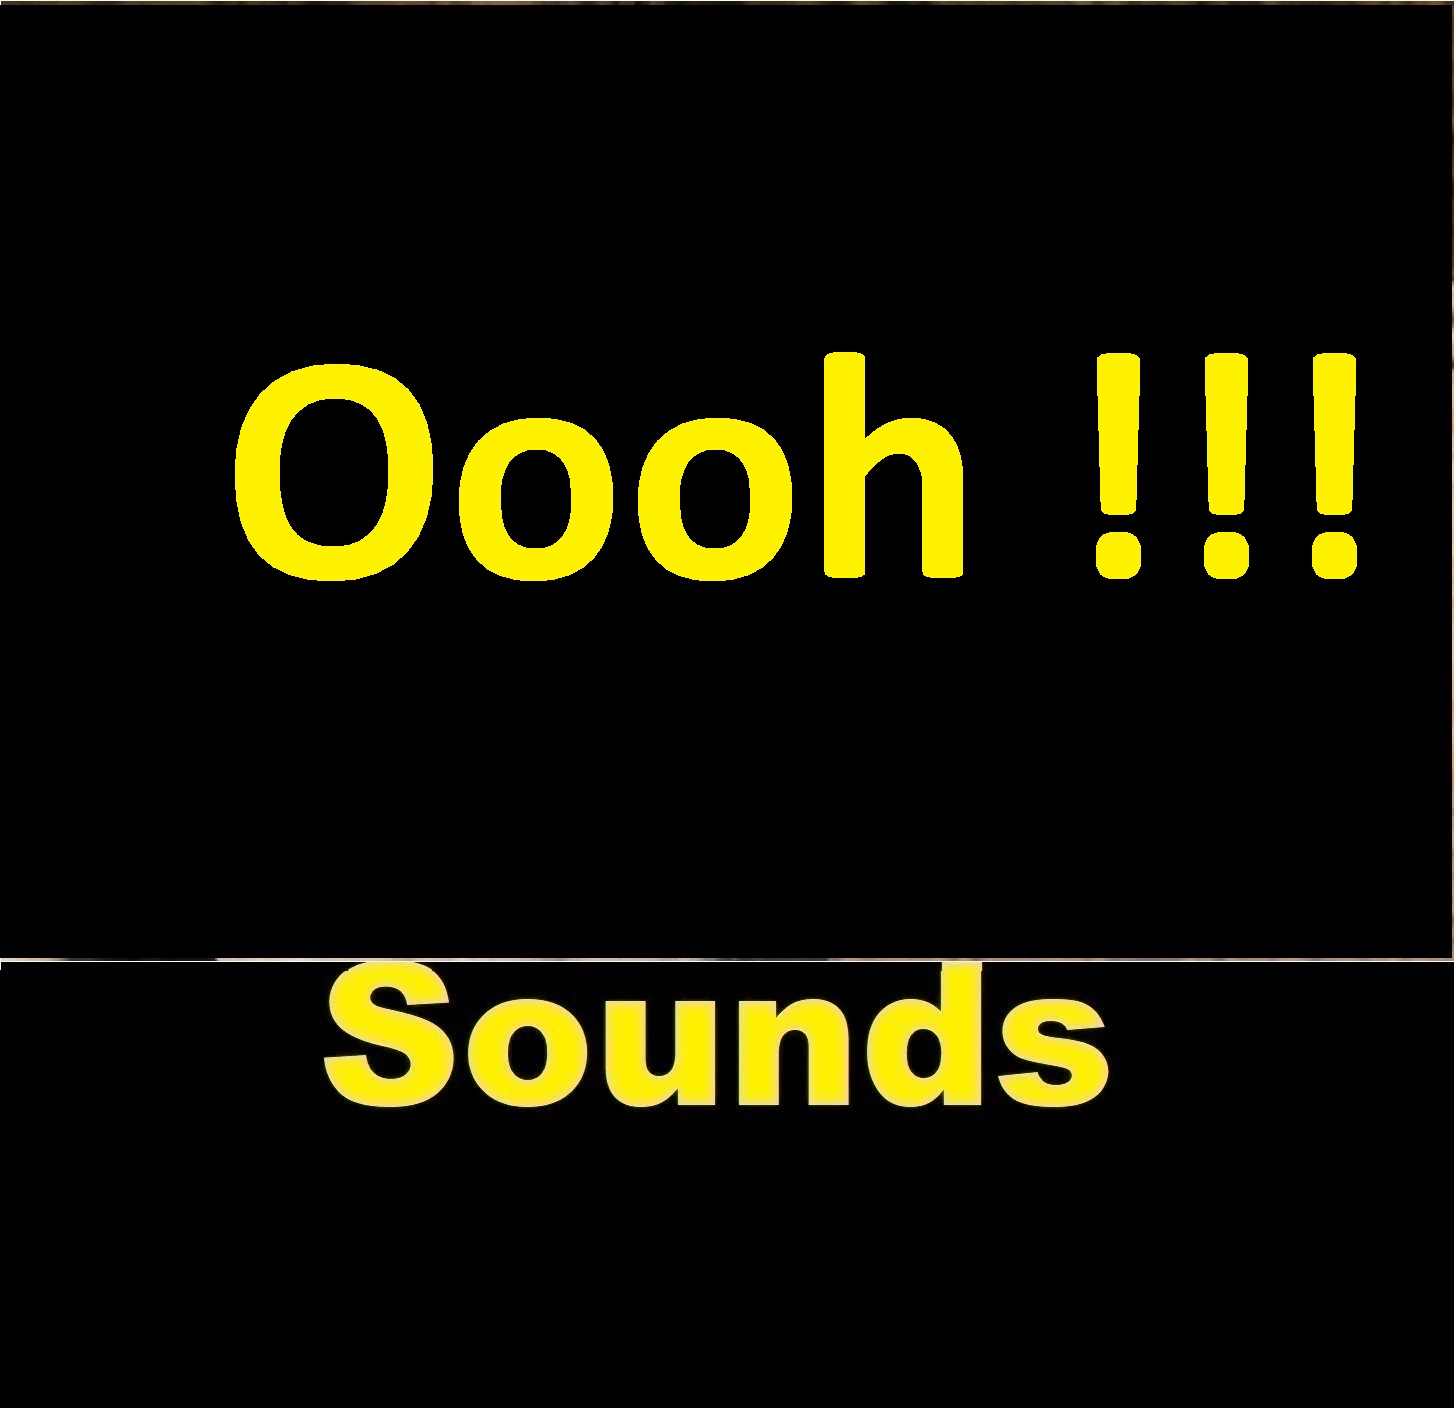 all sound effects oooh